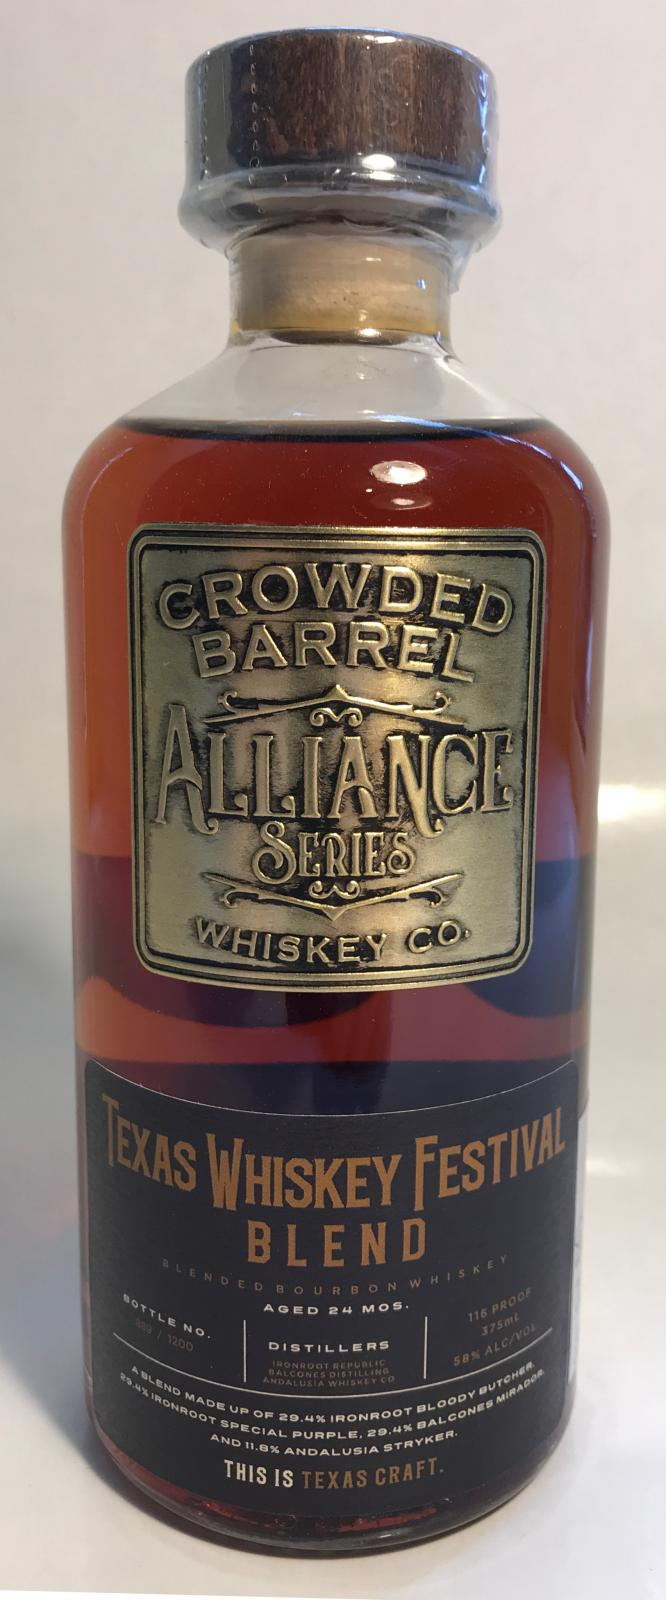 Alliance Series Texas Whiskey Festival Blend CBW